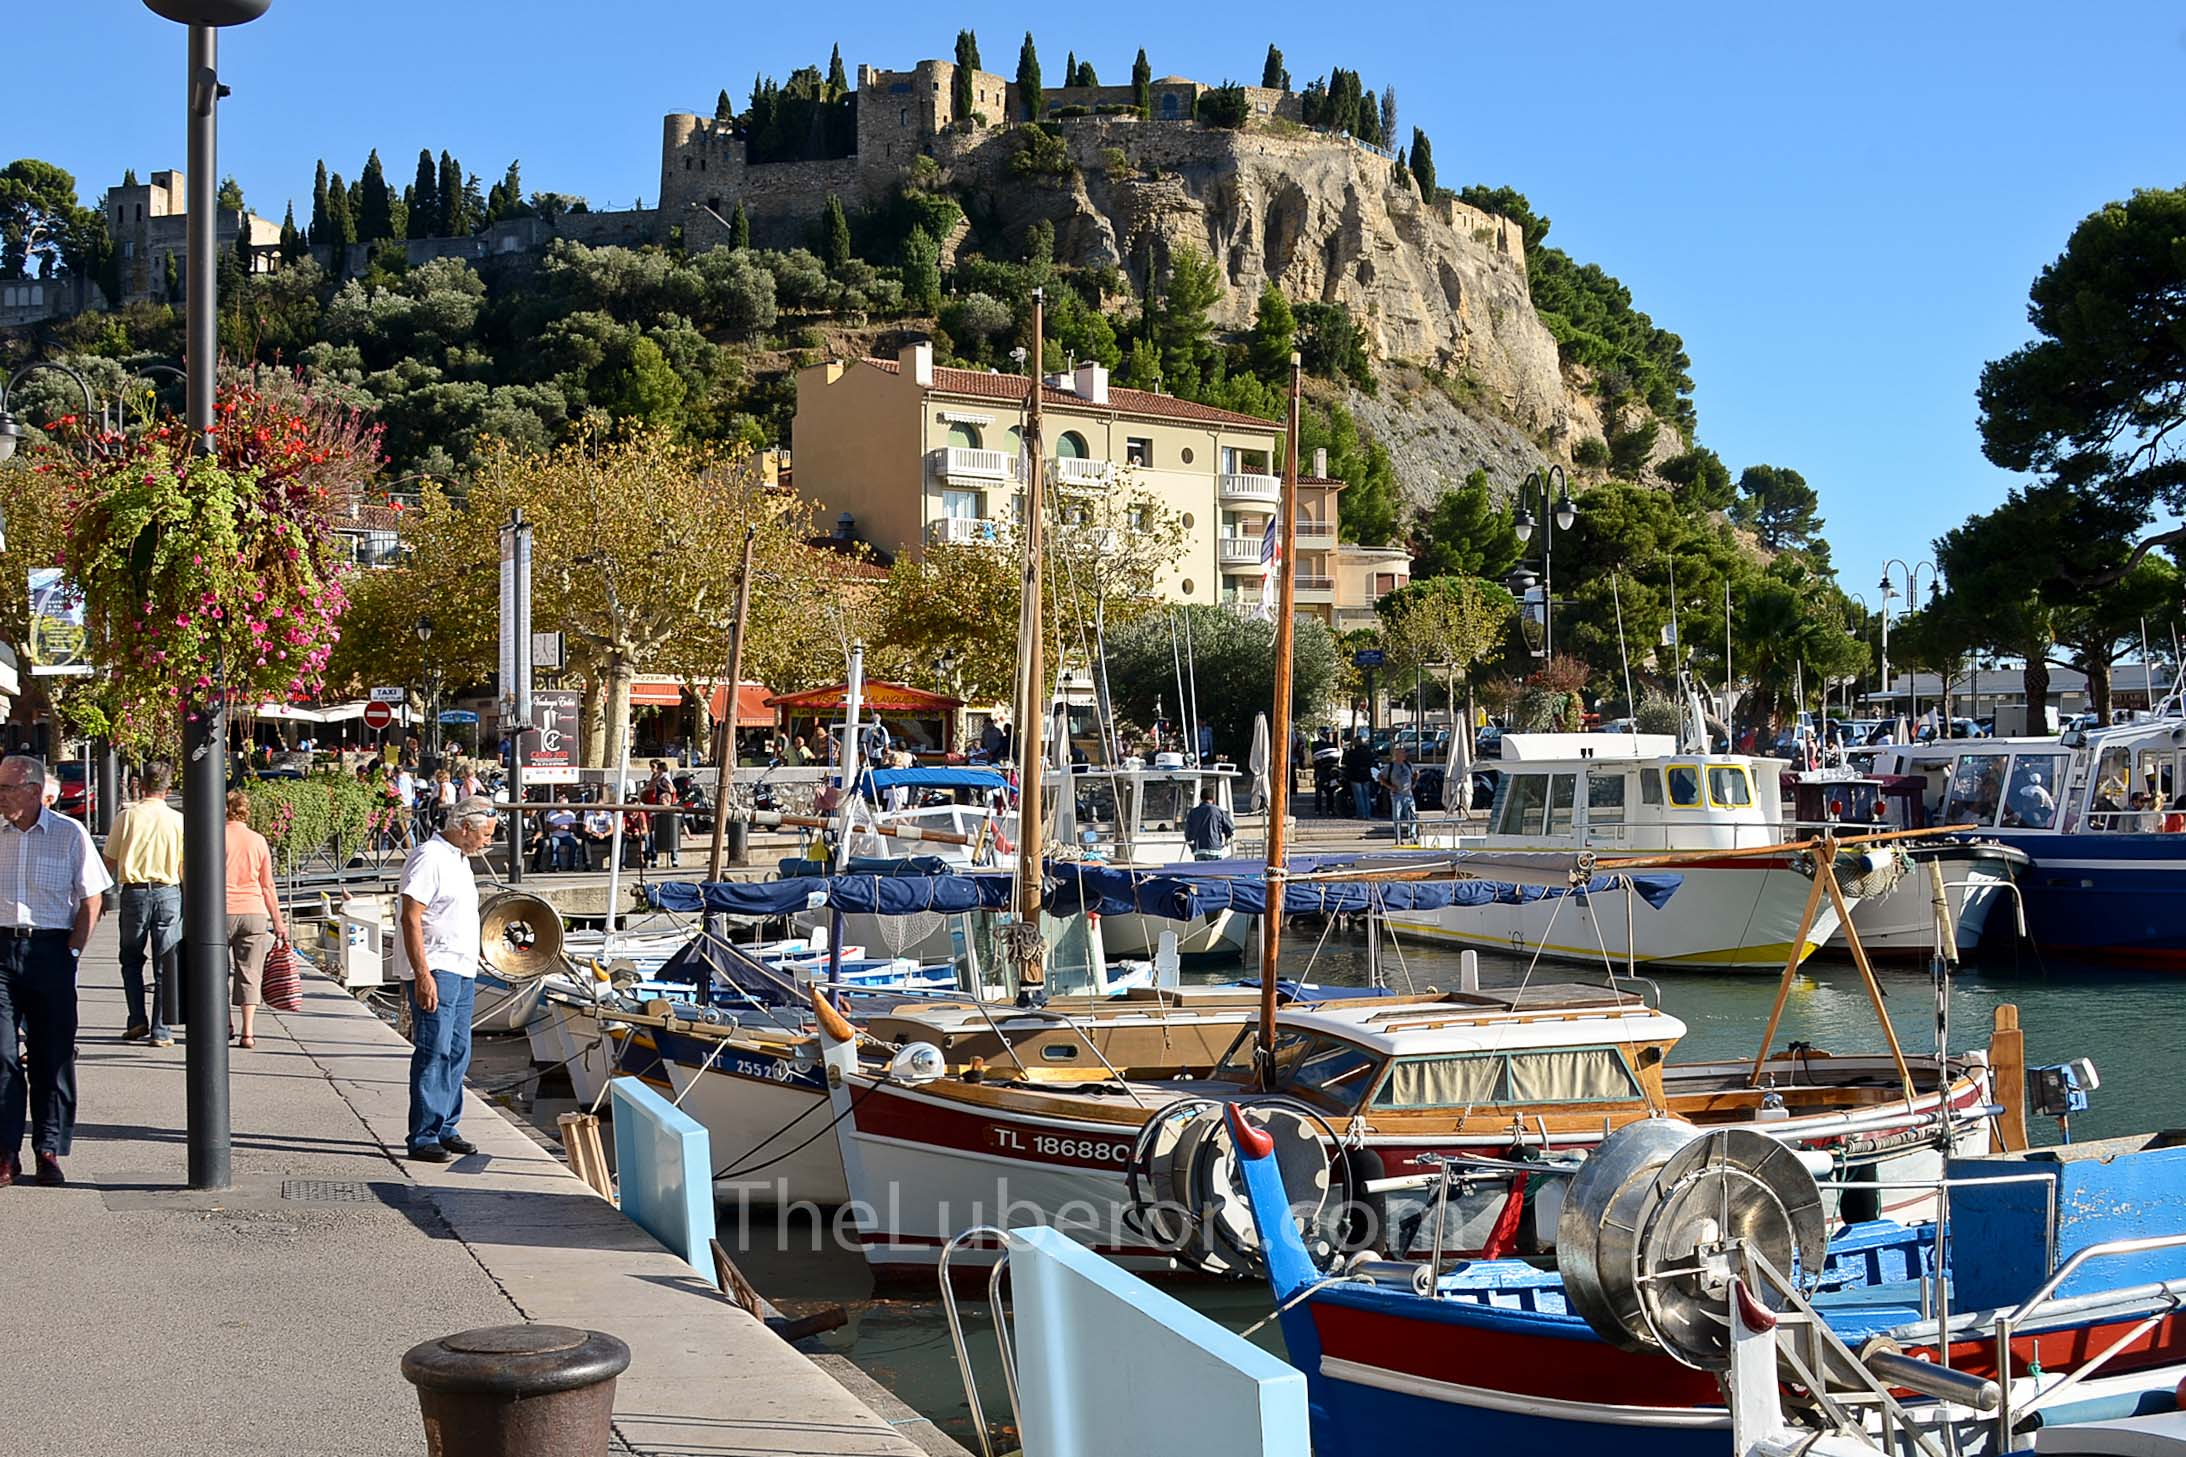 Castle on hill at Cassis